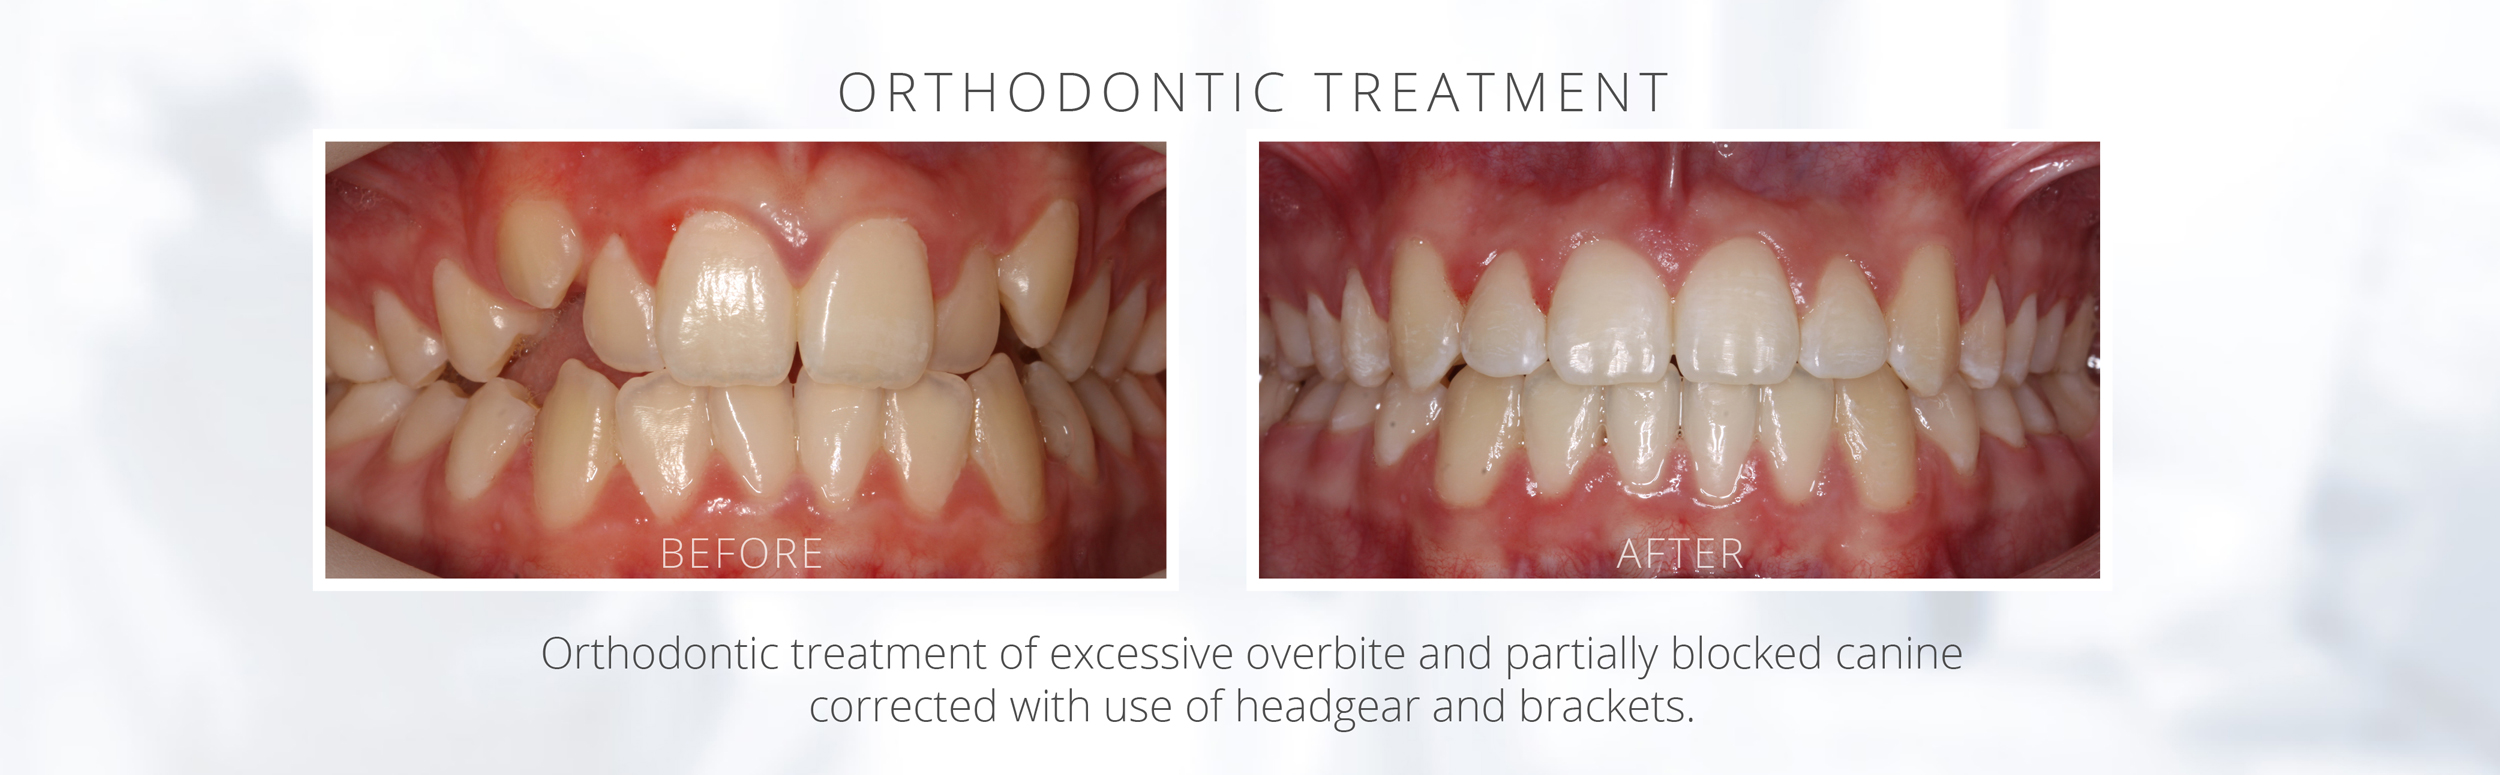 Orthodontic treatment of excessive overbite and partially blocked canine corrected with use of headgear and brackets